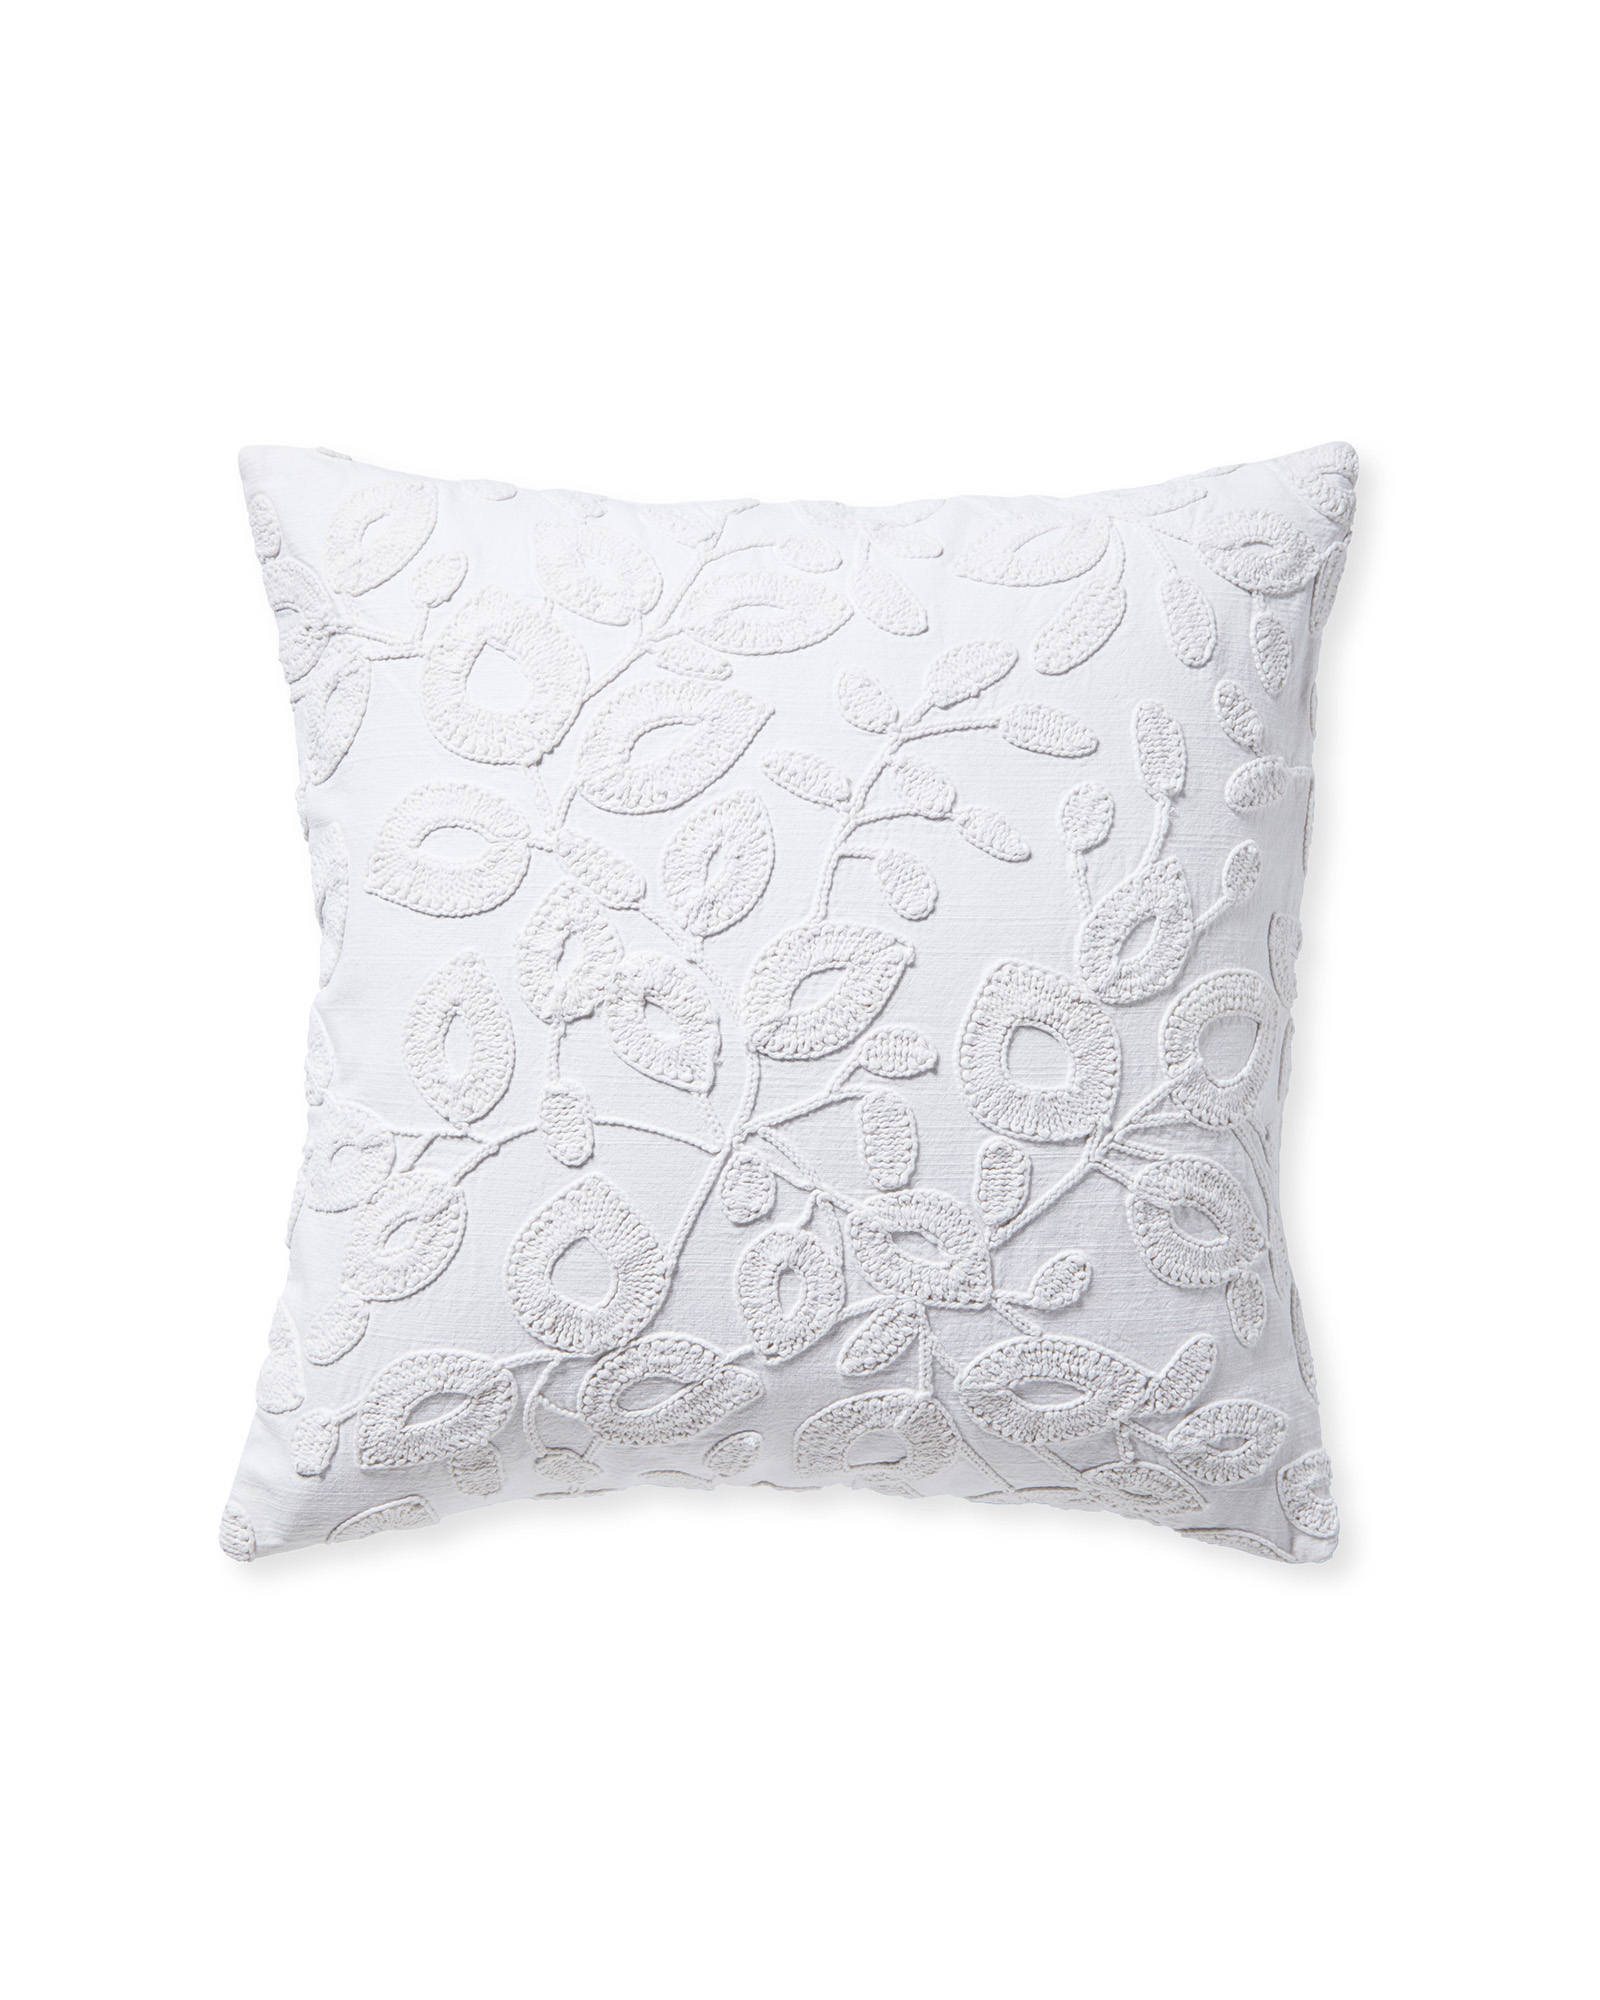 Willowbrook Pillow Cover, White